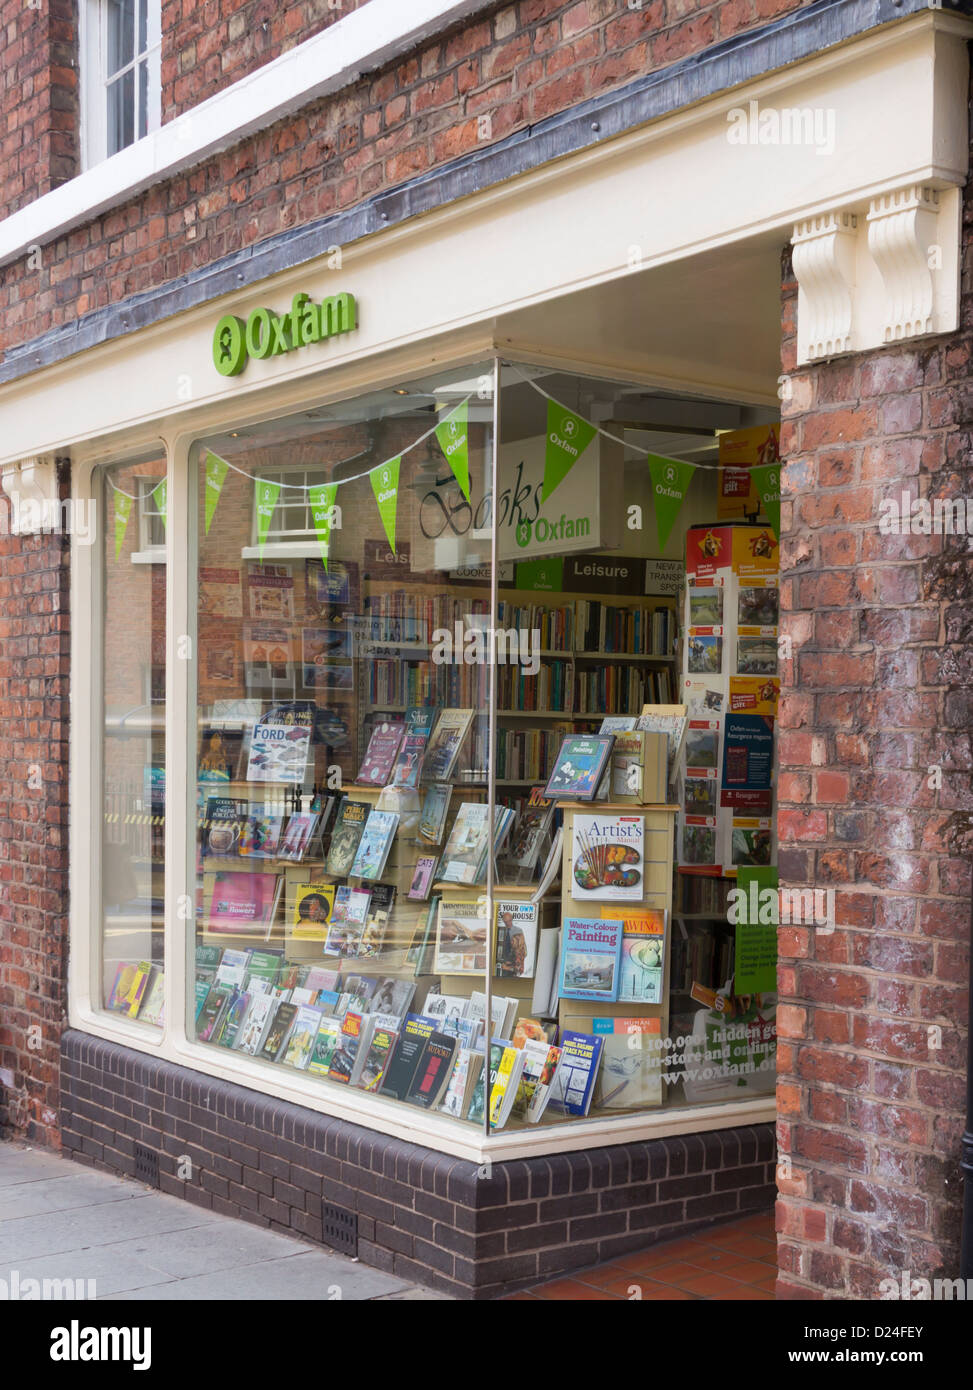 The Oxfam charity bookshop on Dogpole Shrewsbury, one of 150  specialist secondhand book sellers. run by Oxfam. - Stock Image